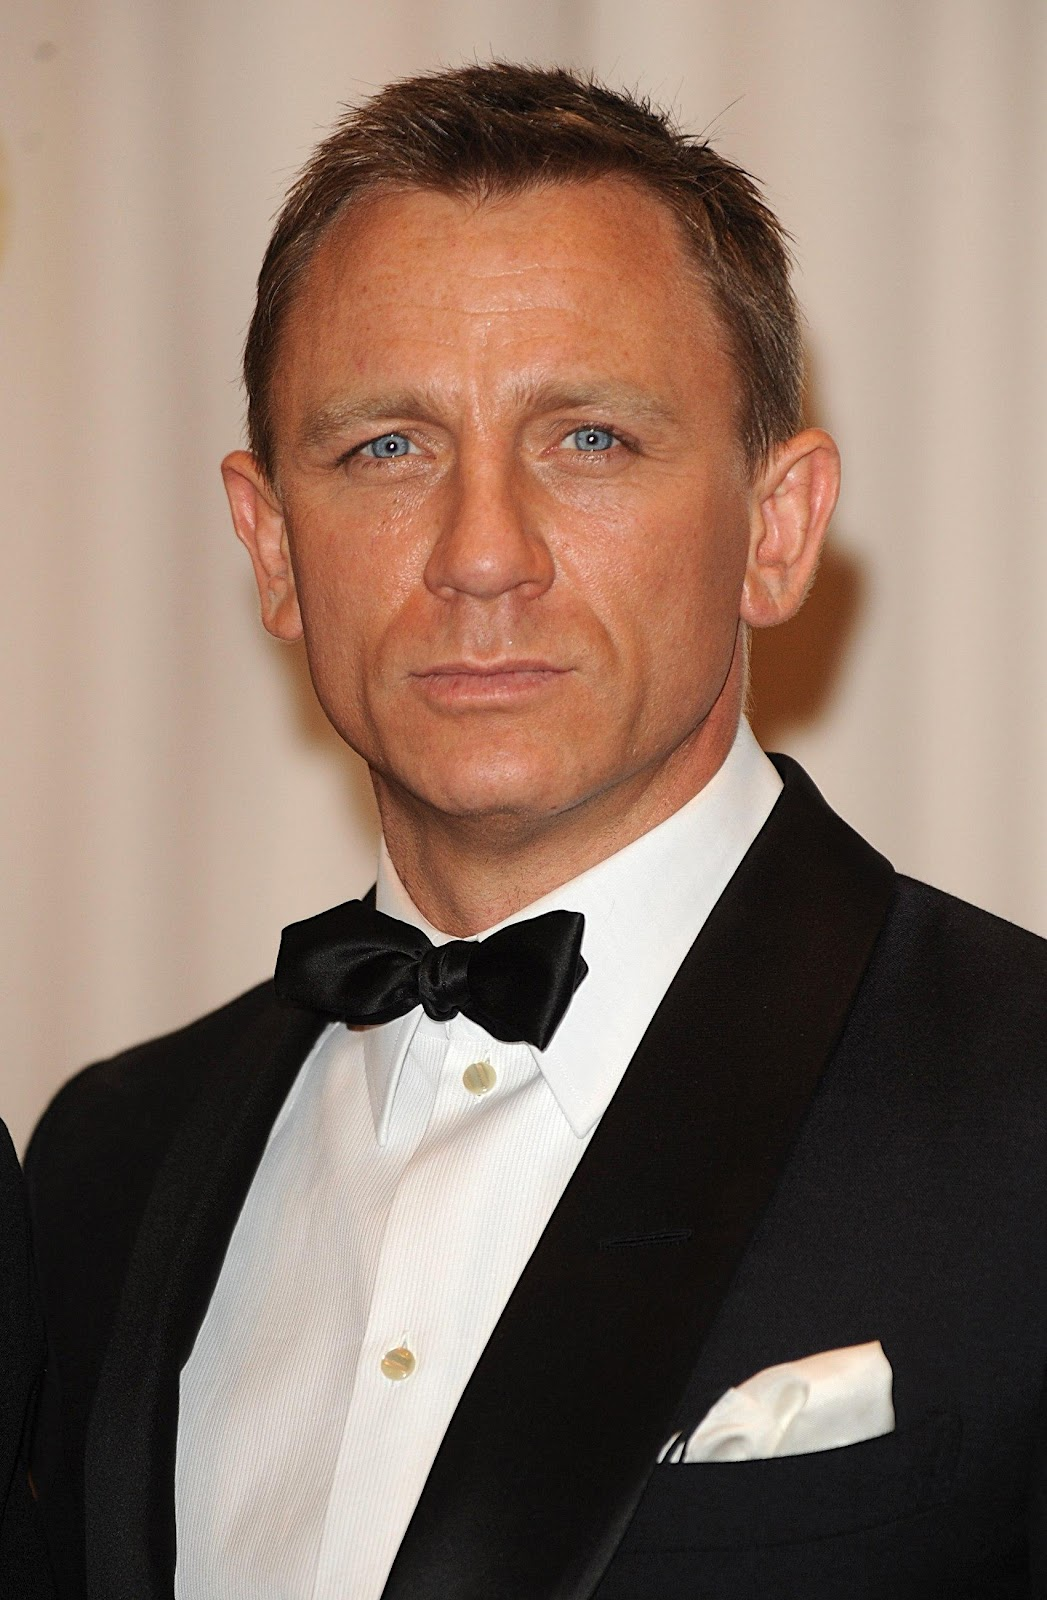 Stylish Wallpapers With Quotes Daniel Craig Hd Wallpapers High Definition Free